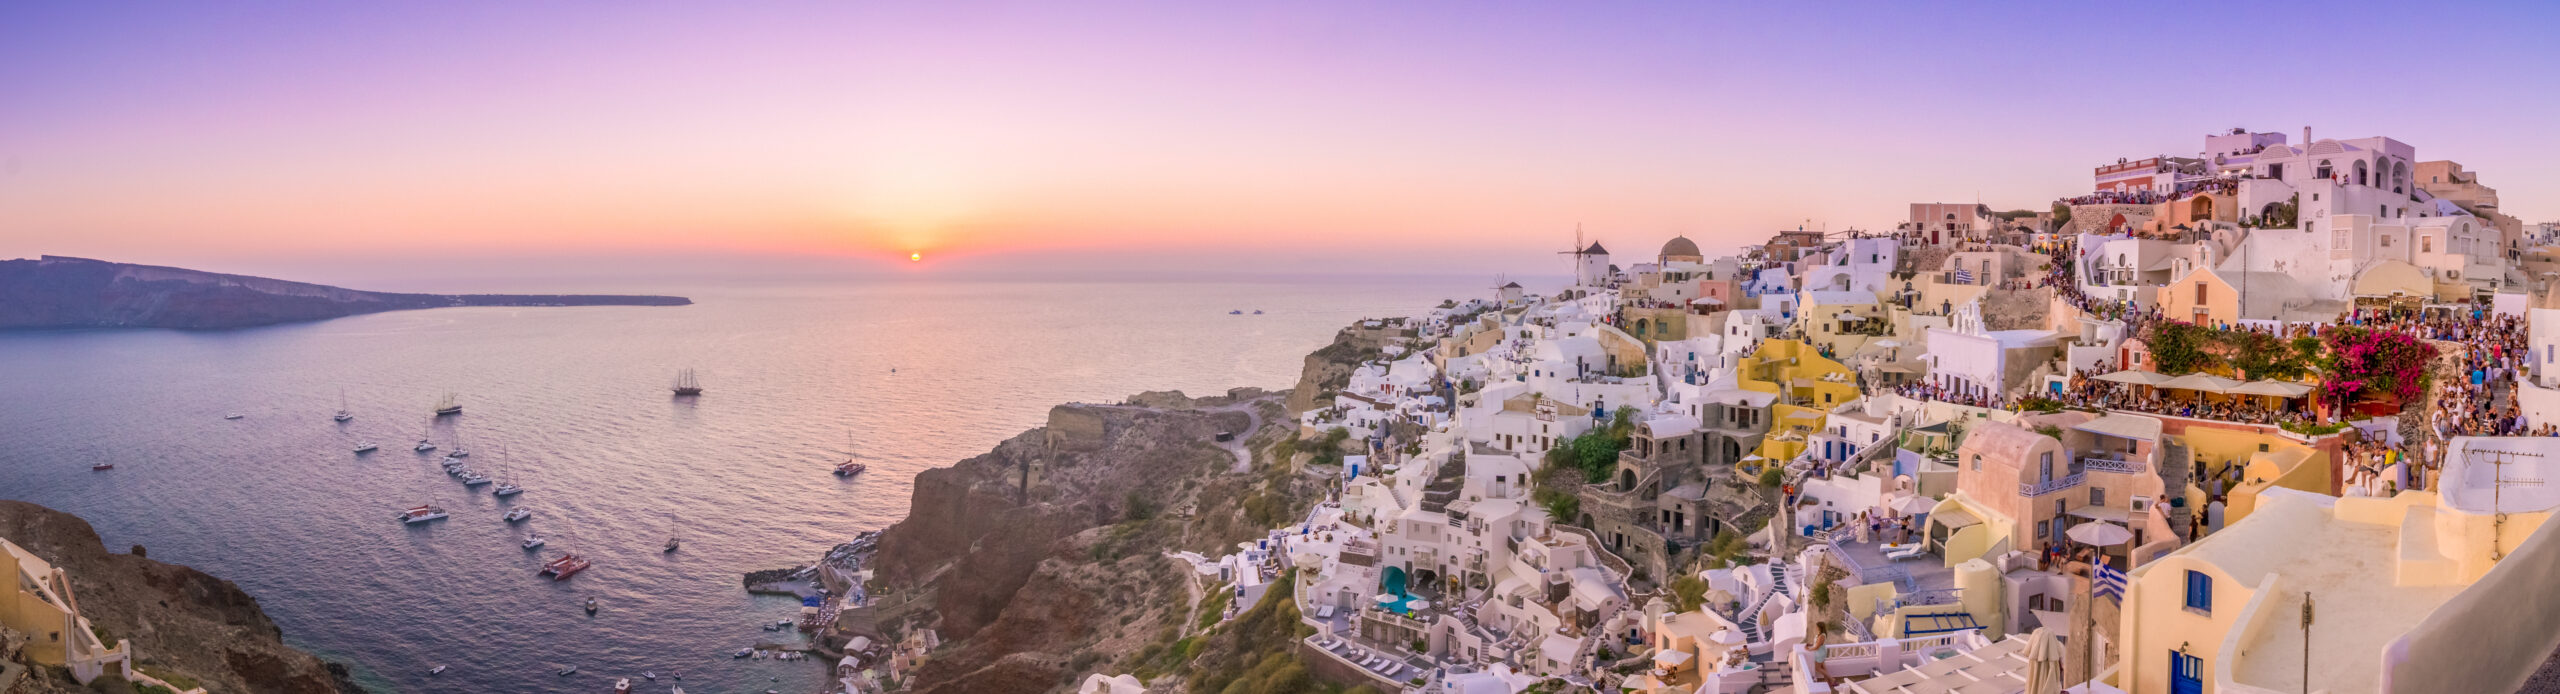 The unknown capital of Santorini that today does not exist